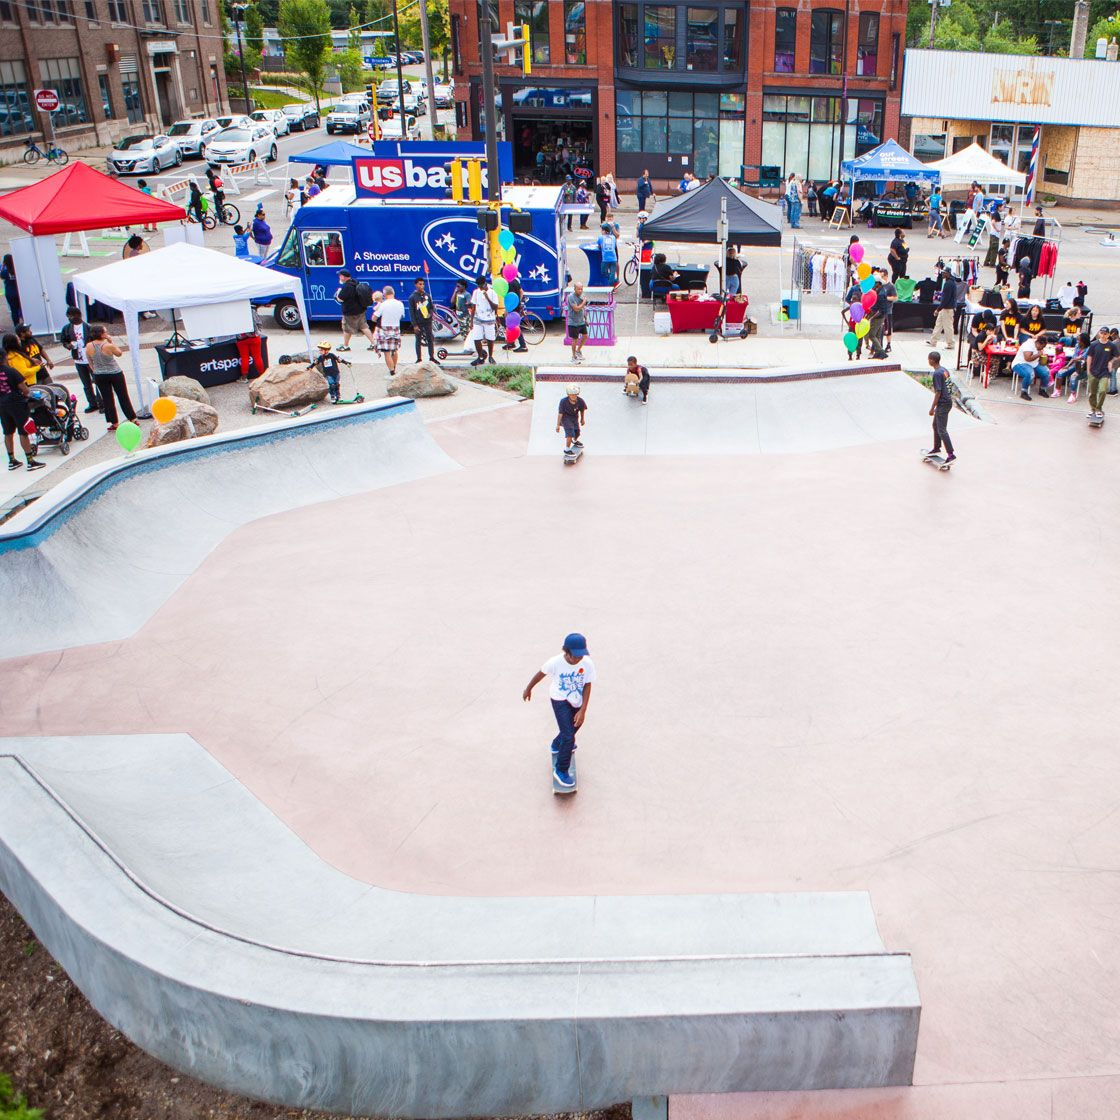 People milling about in a skate-able plaza